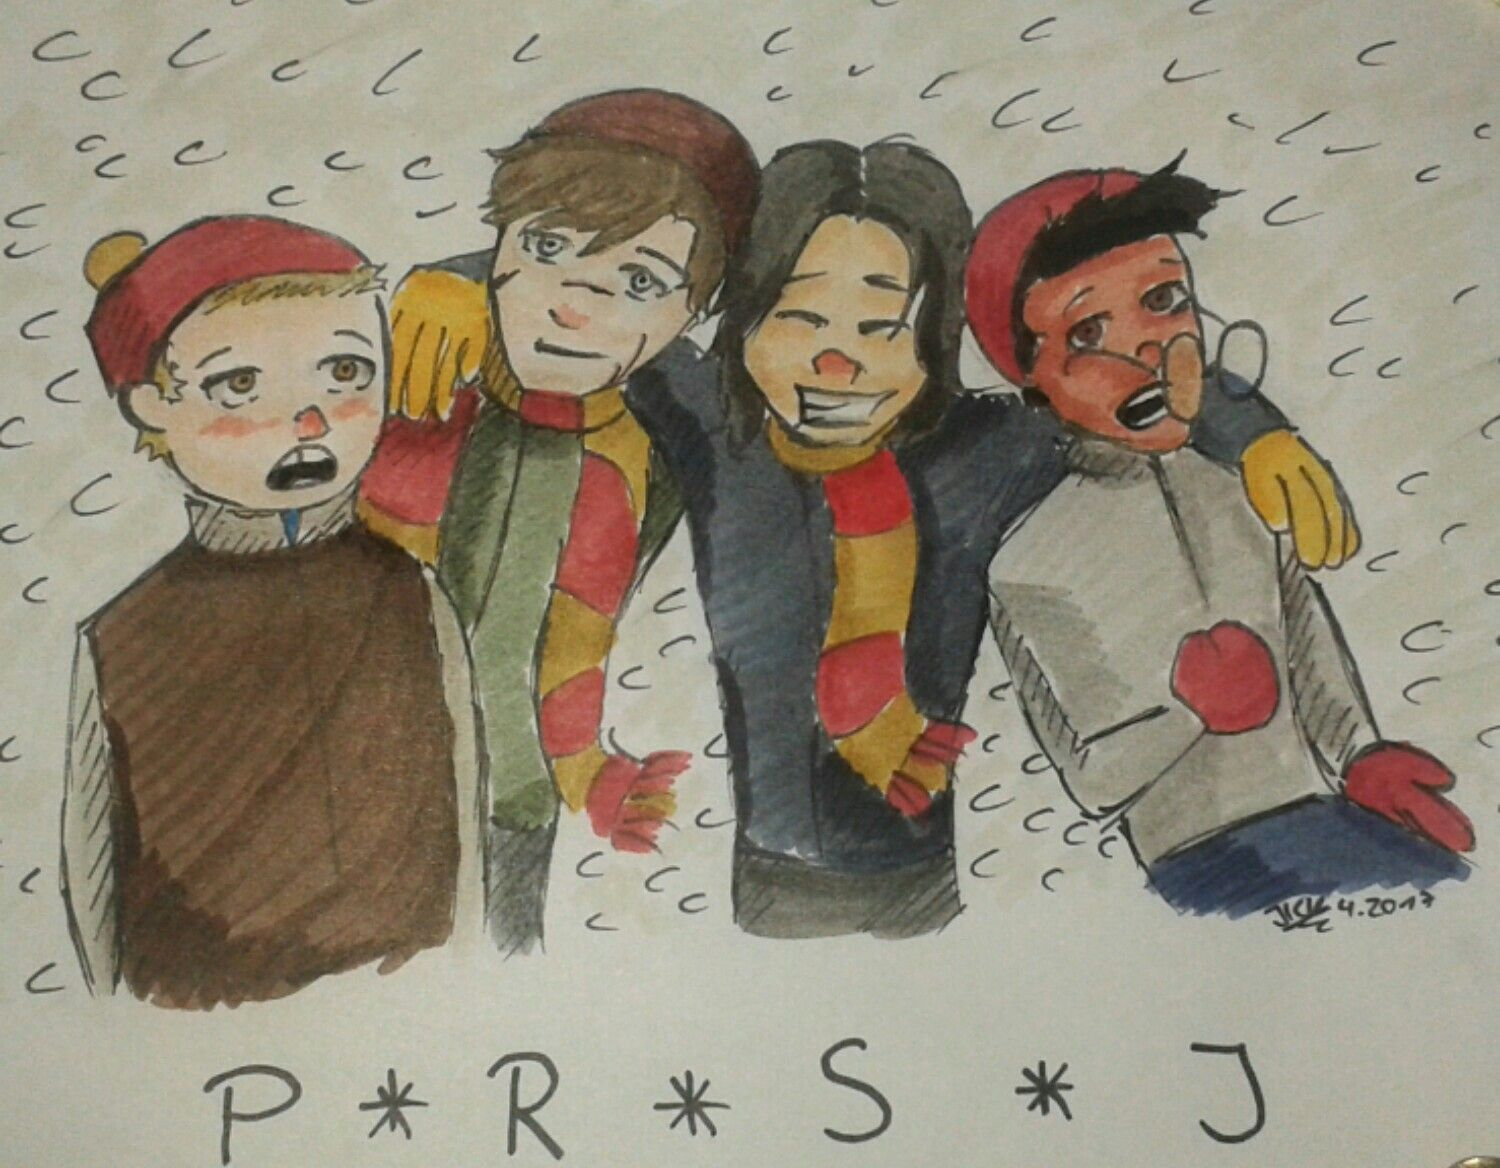 Just a little drawing of the Marauders :)